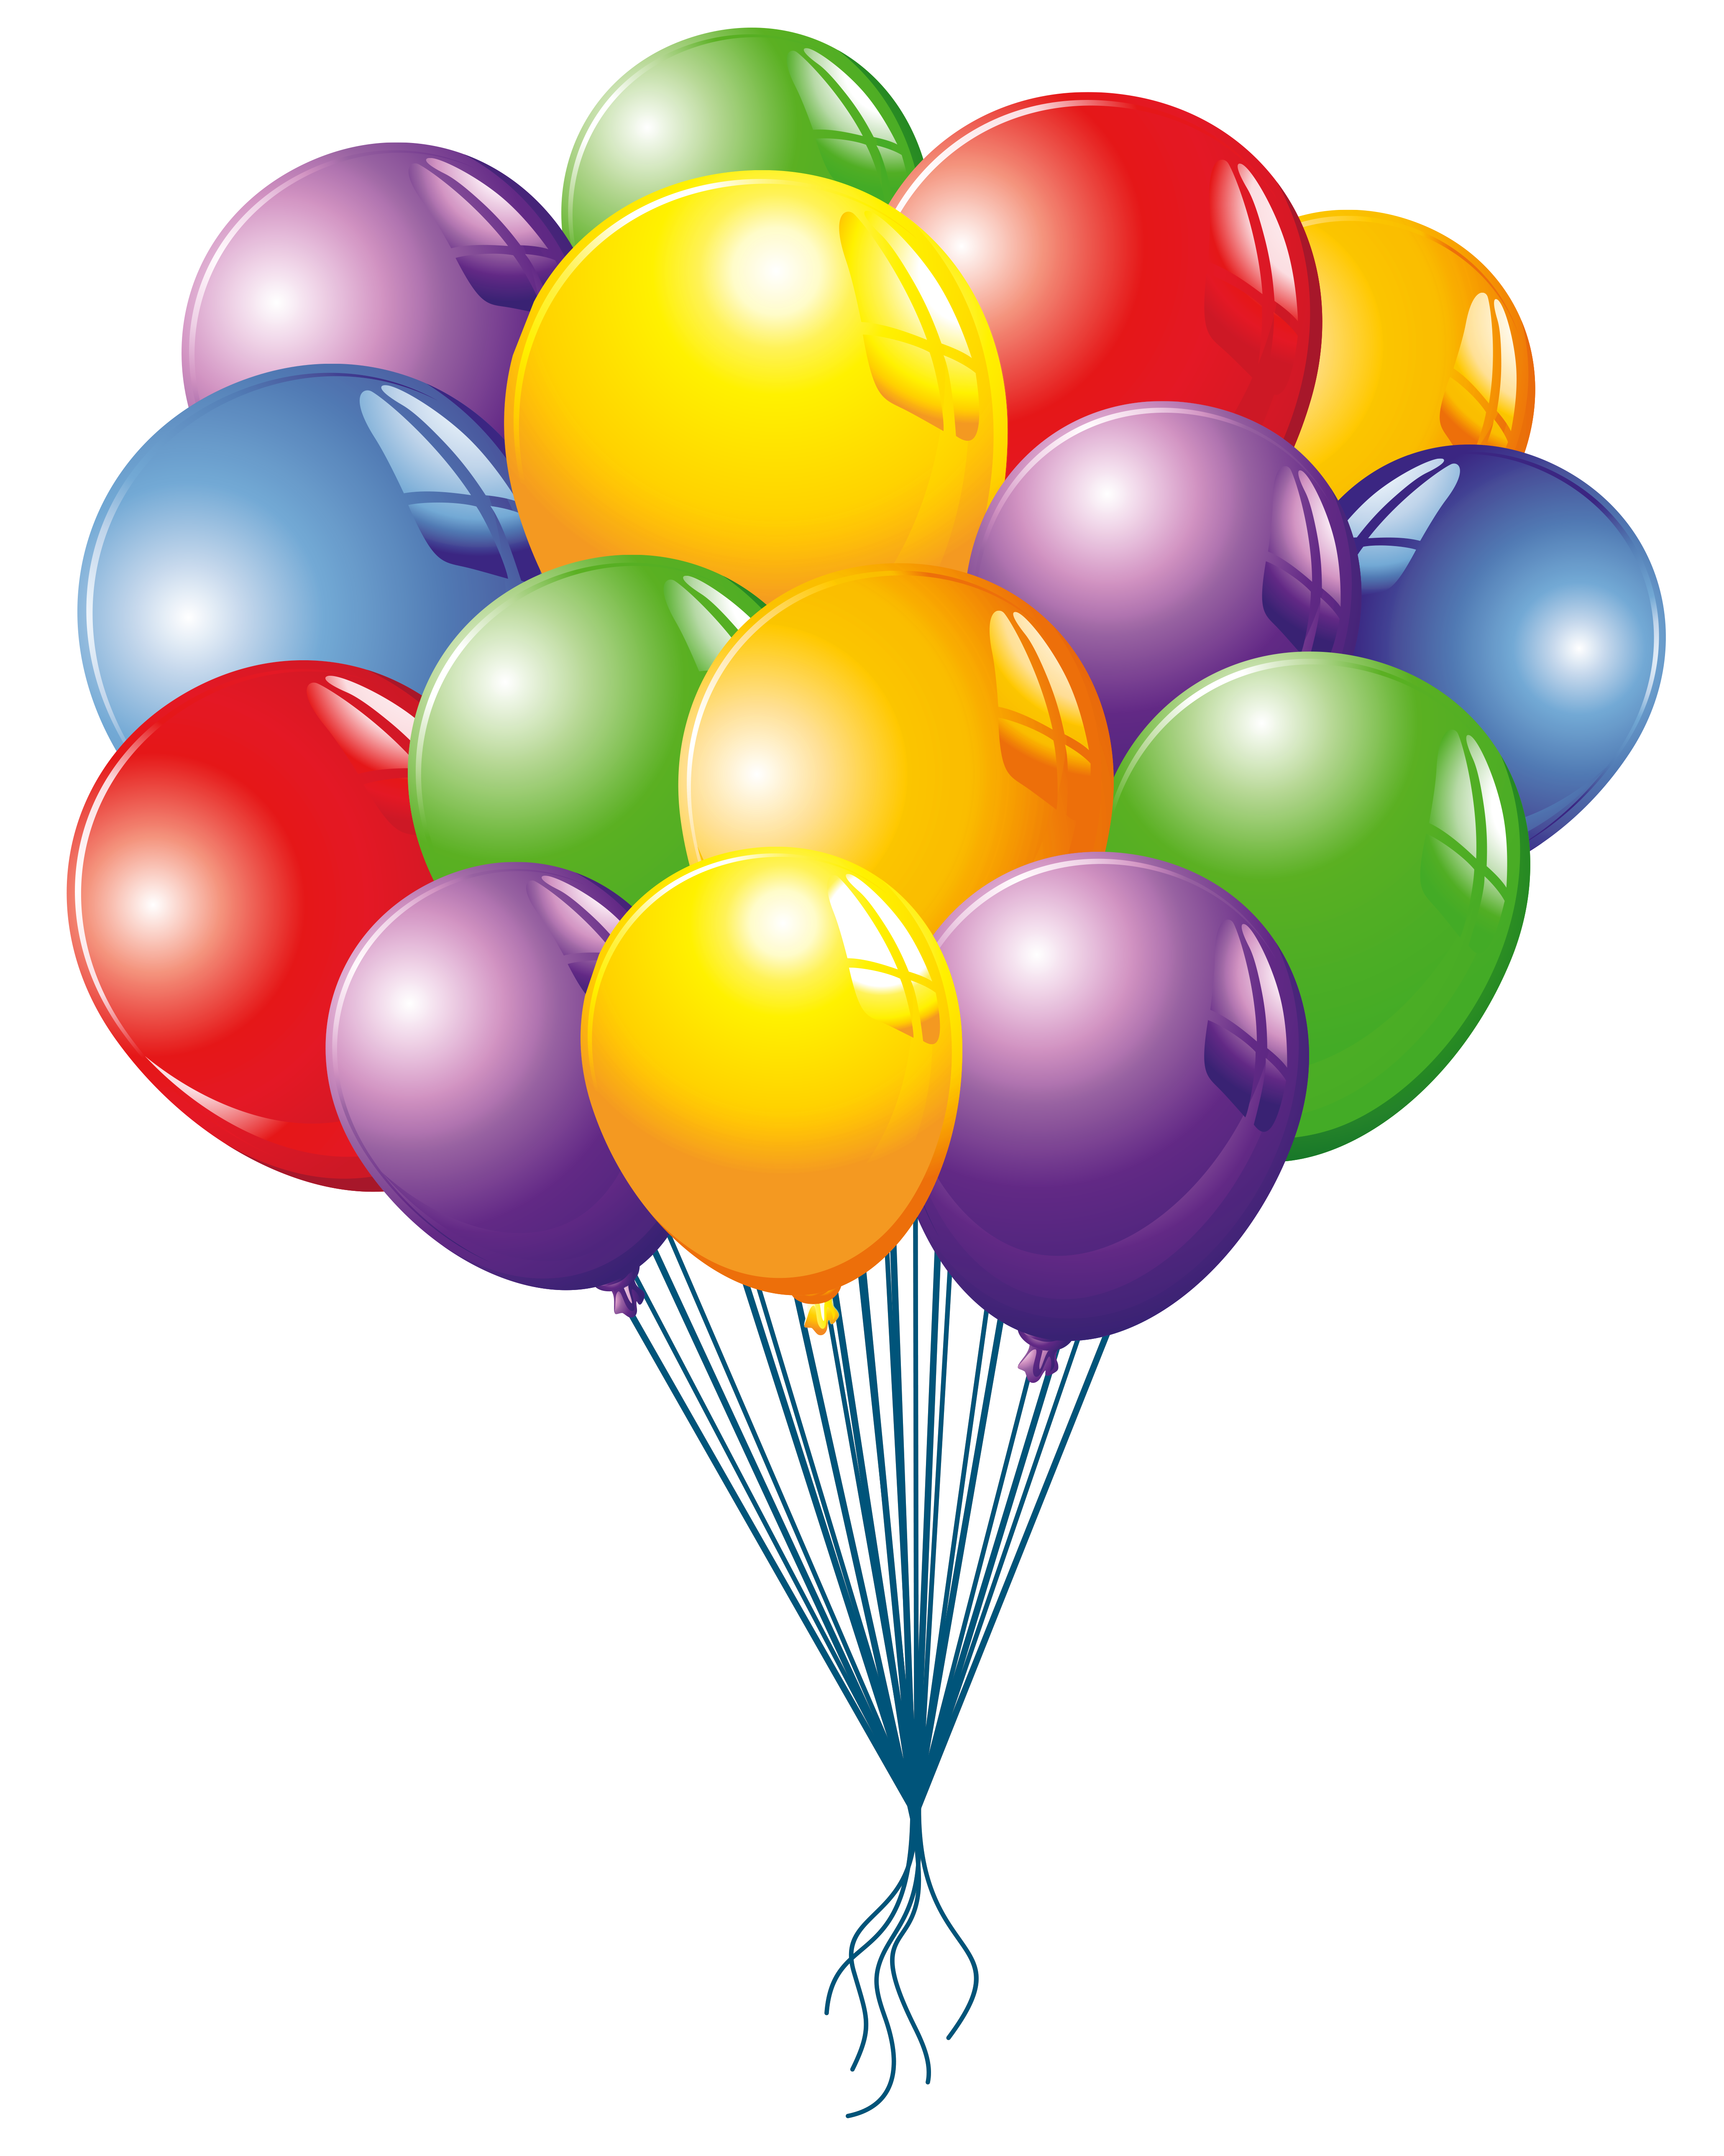 4122x5156 Balloons Clipart Imageu200b Gallery Yopriceville